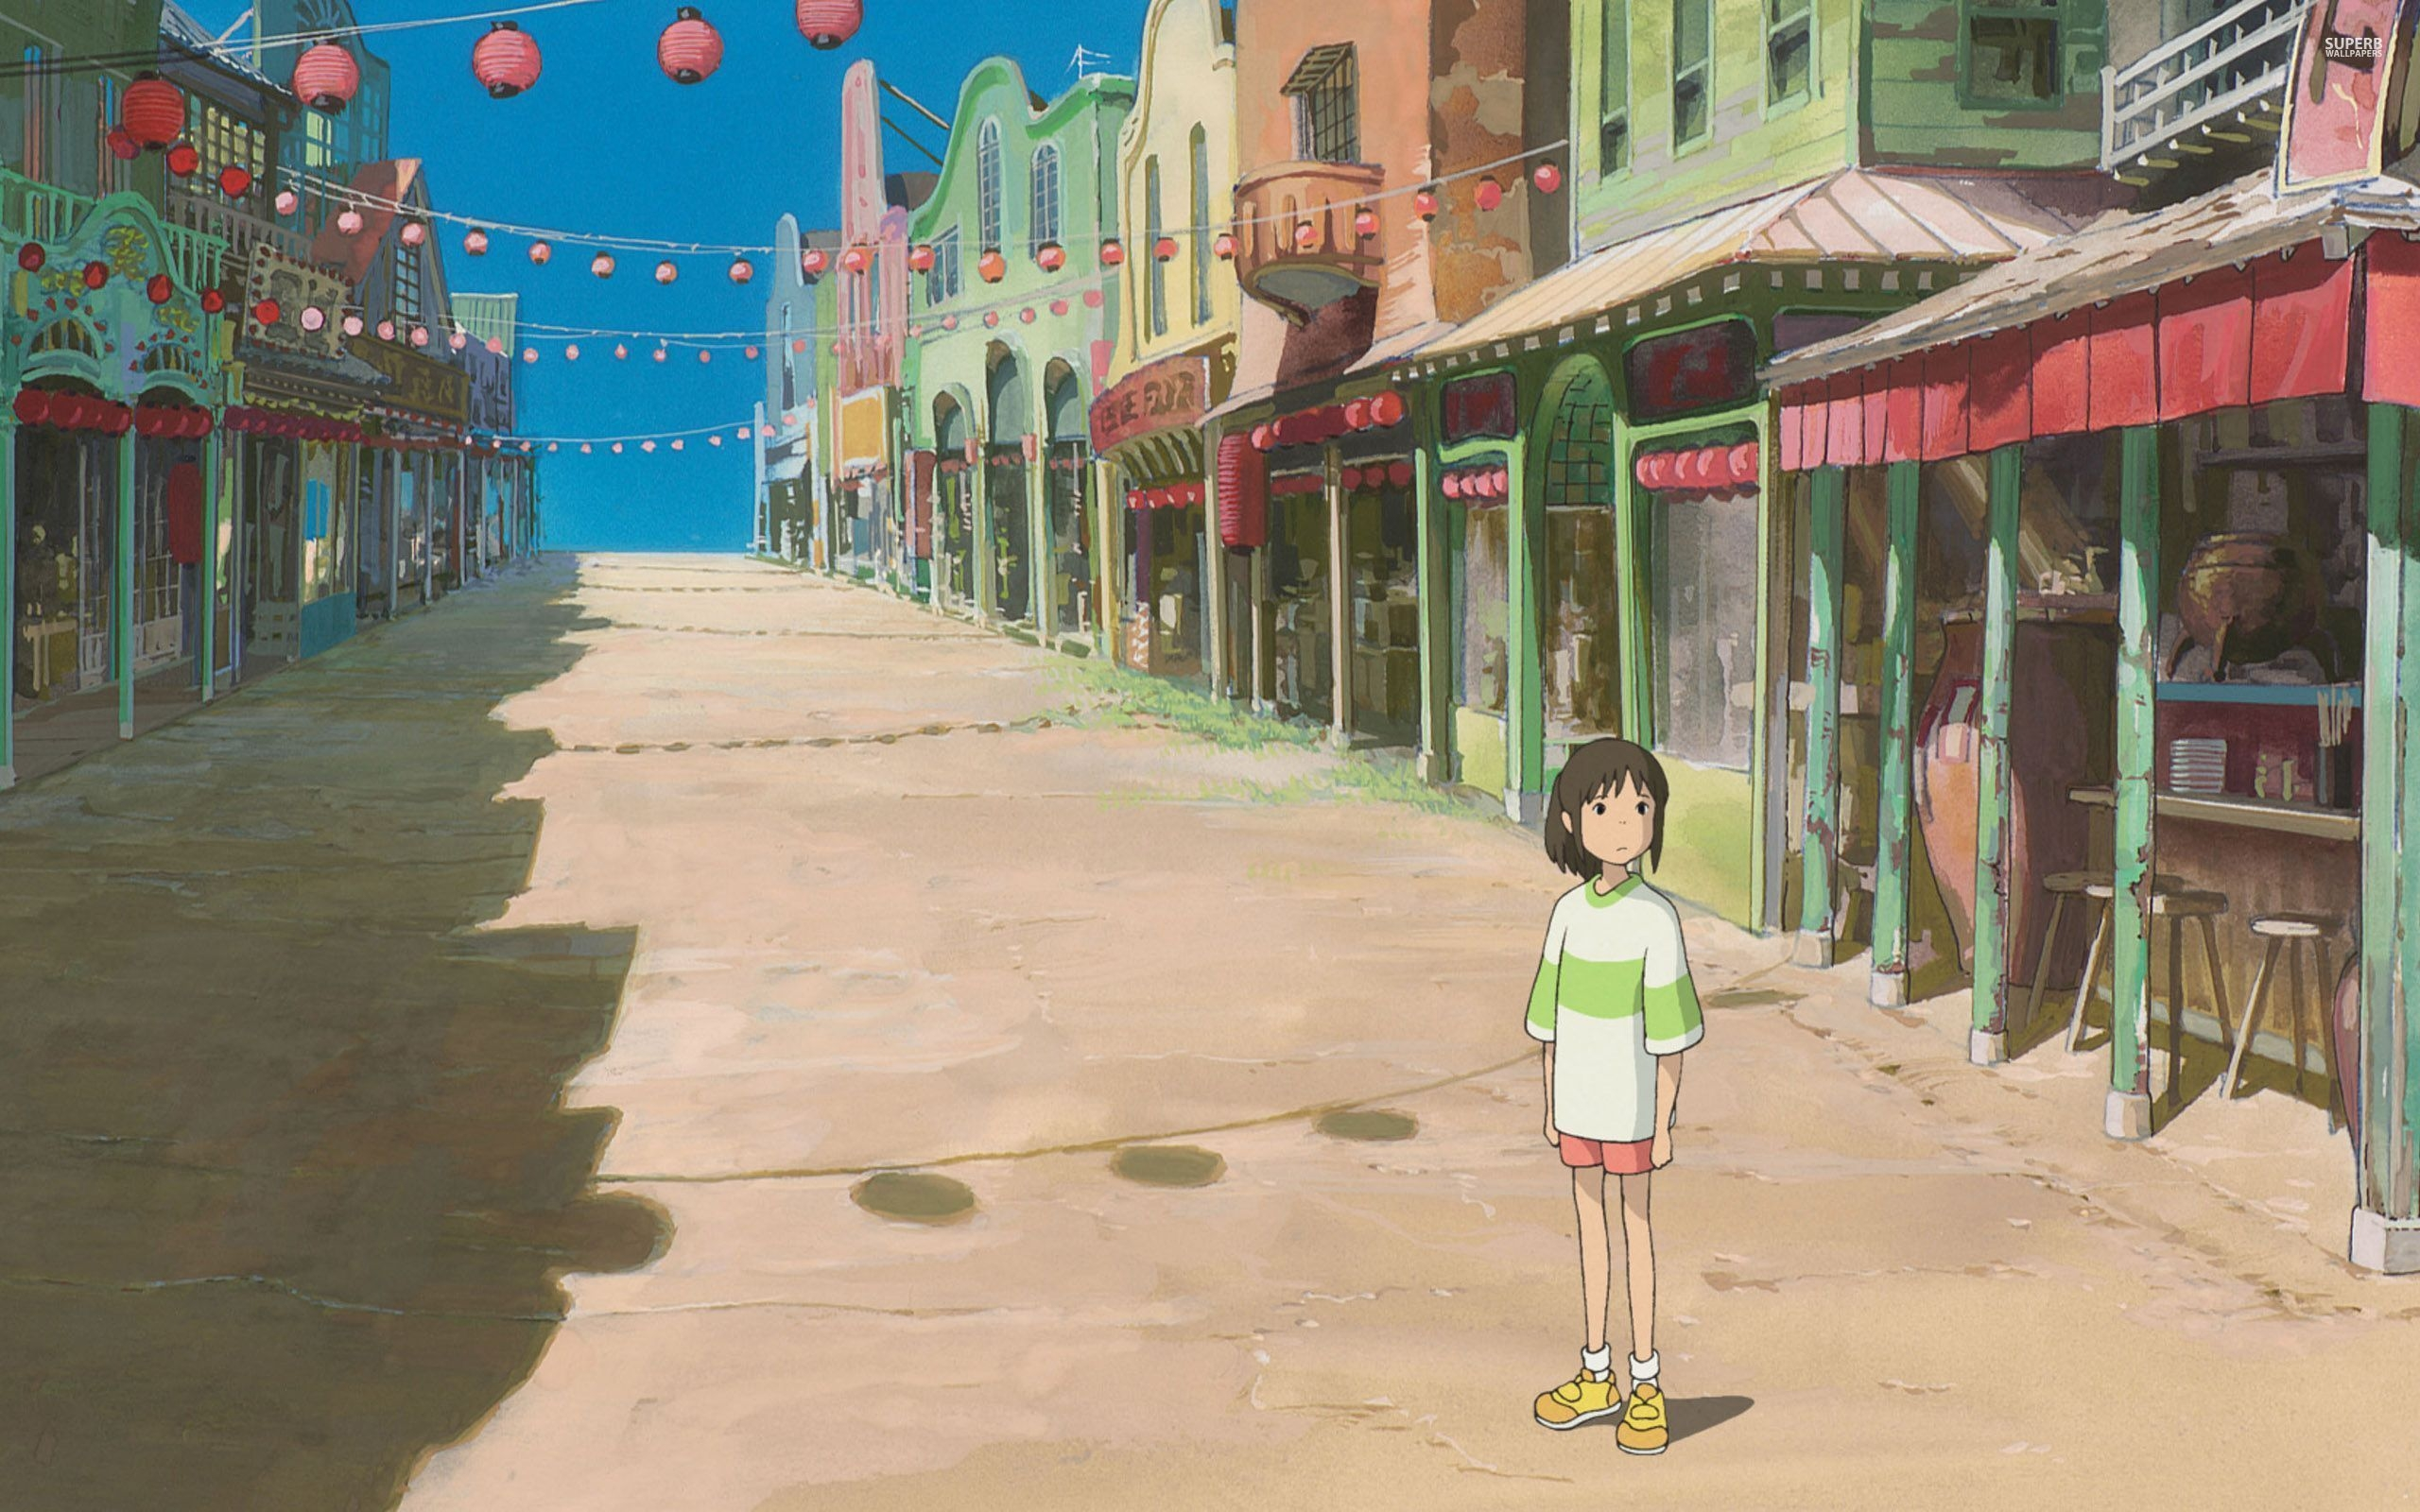 Ghiblies, Spirited Away